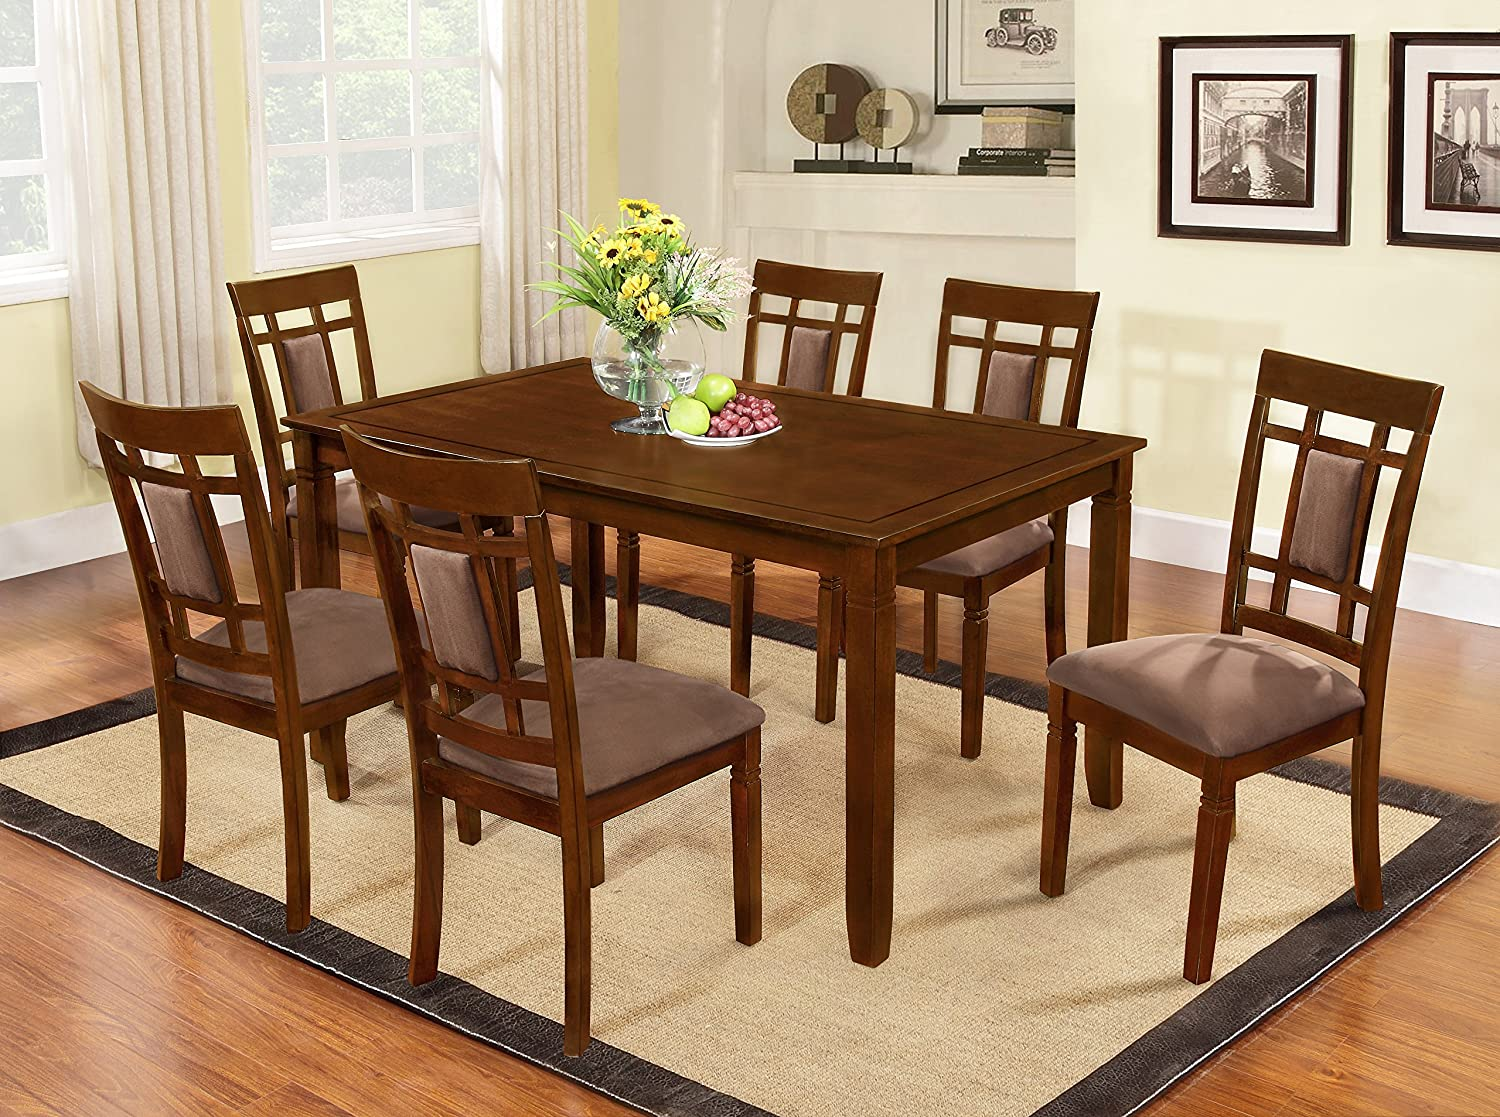 Amazon.com - The Room Style 7 piece Cherry Finish Solid Wood Dining ...